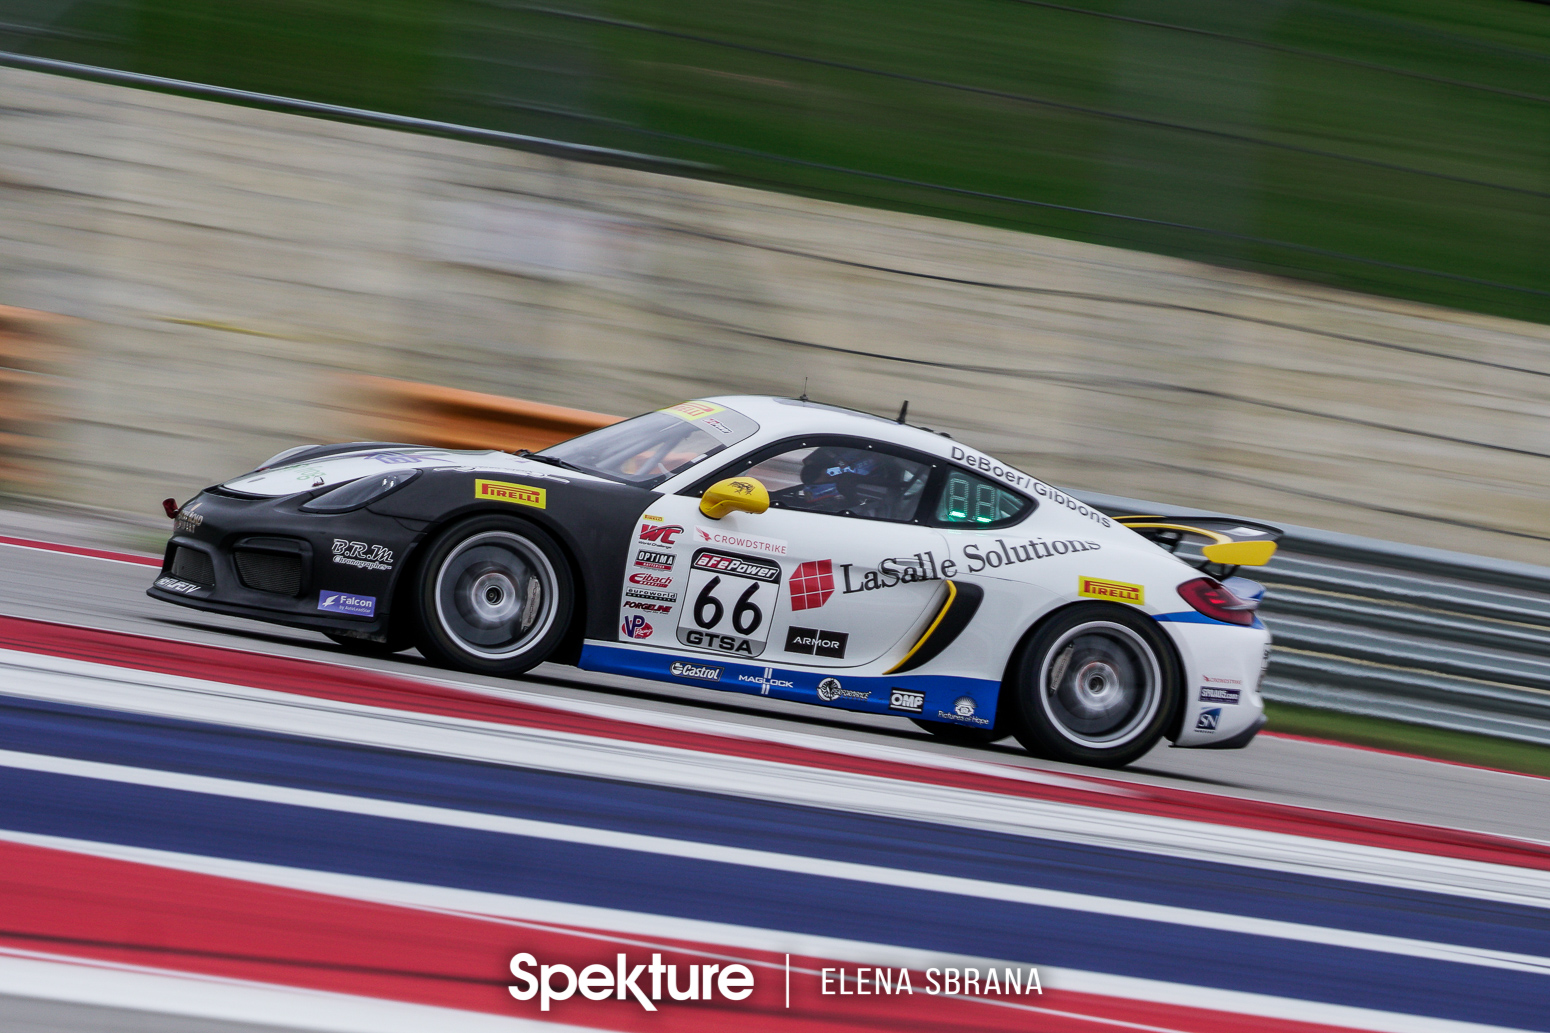 Earchphoto - The TRG Porsche on the track at COTA.